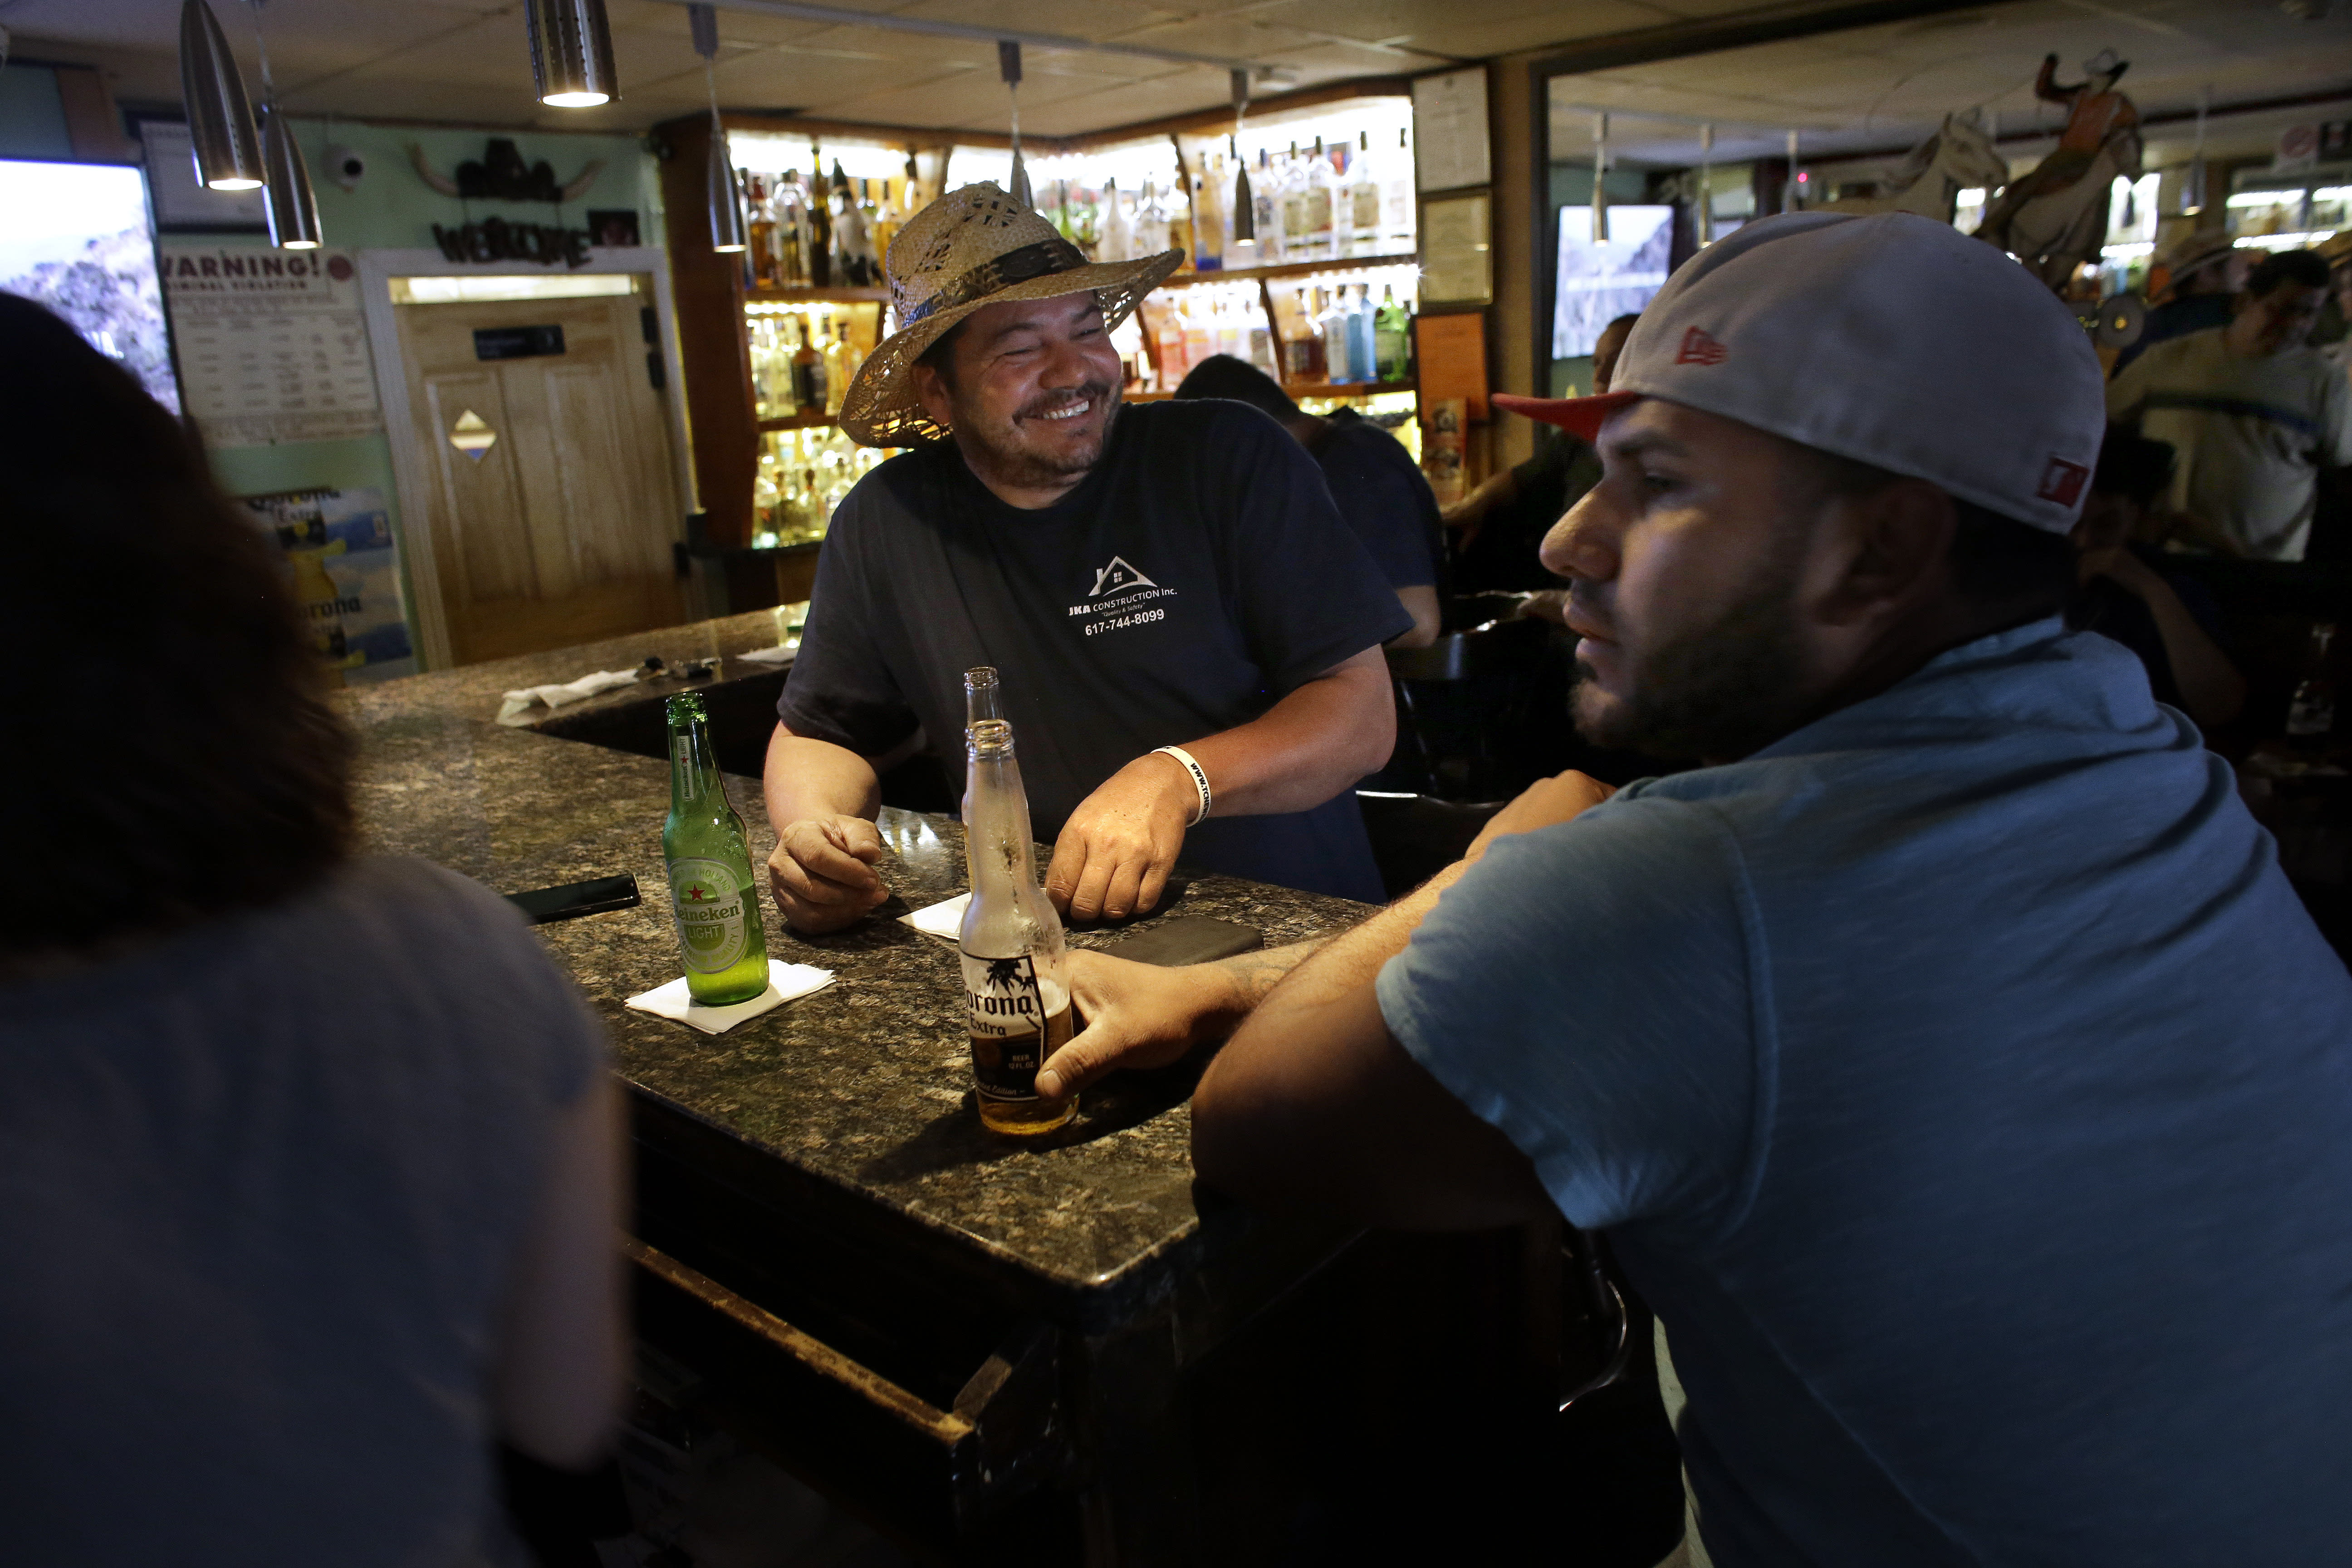 In this Thursday, June 27, 2019 photo patrons, who asked that they not be identified by name, are seated in a bar, in Chelsea, Mass. In the last two decades Chelsea and its neighbors Everett, Malden, Revere and Lynn have all become the region's most diverse communities, a Boston Indicators study found. (AP Photo/Steven Senne)